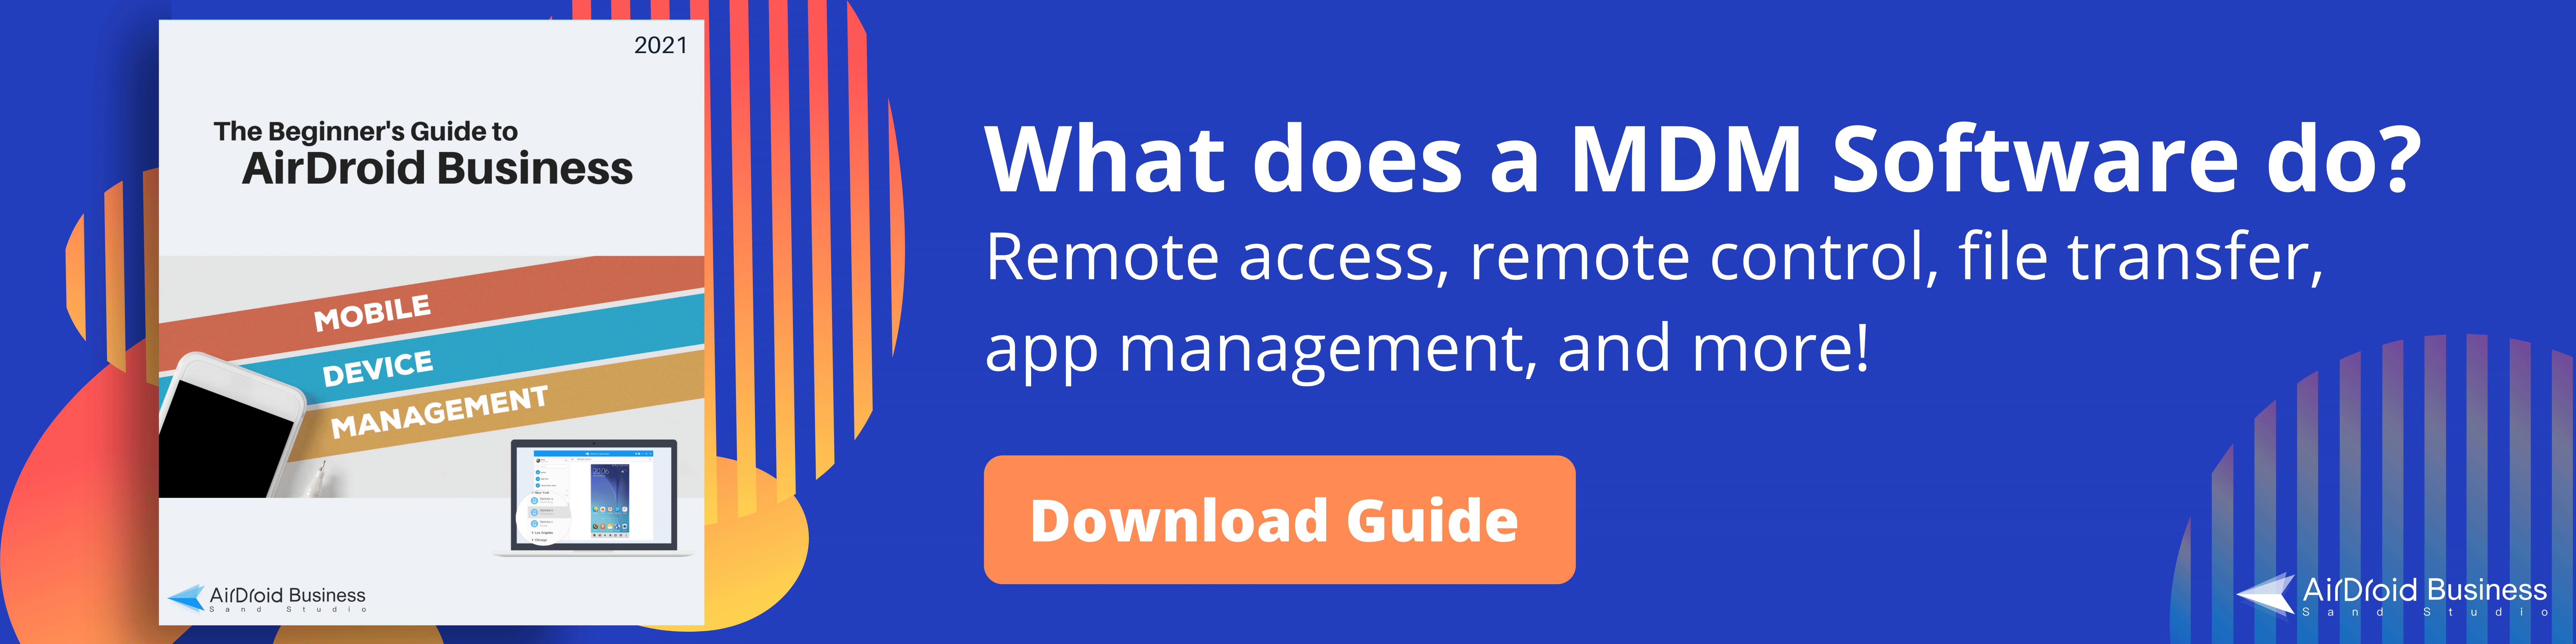 mdm_ebook_guide2.png